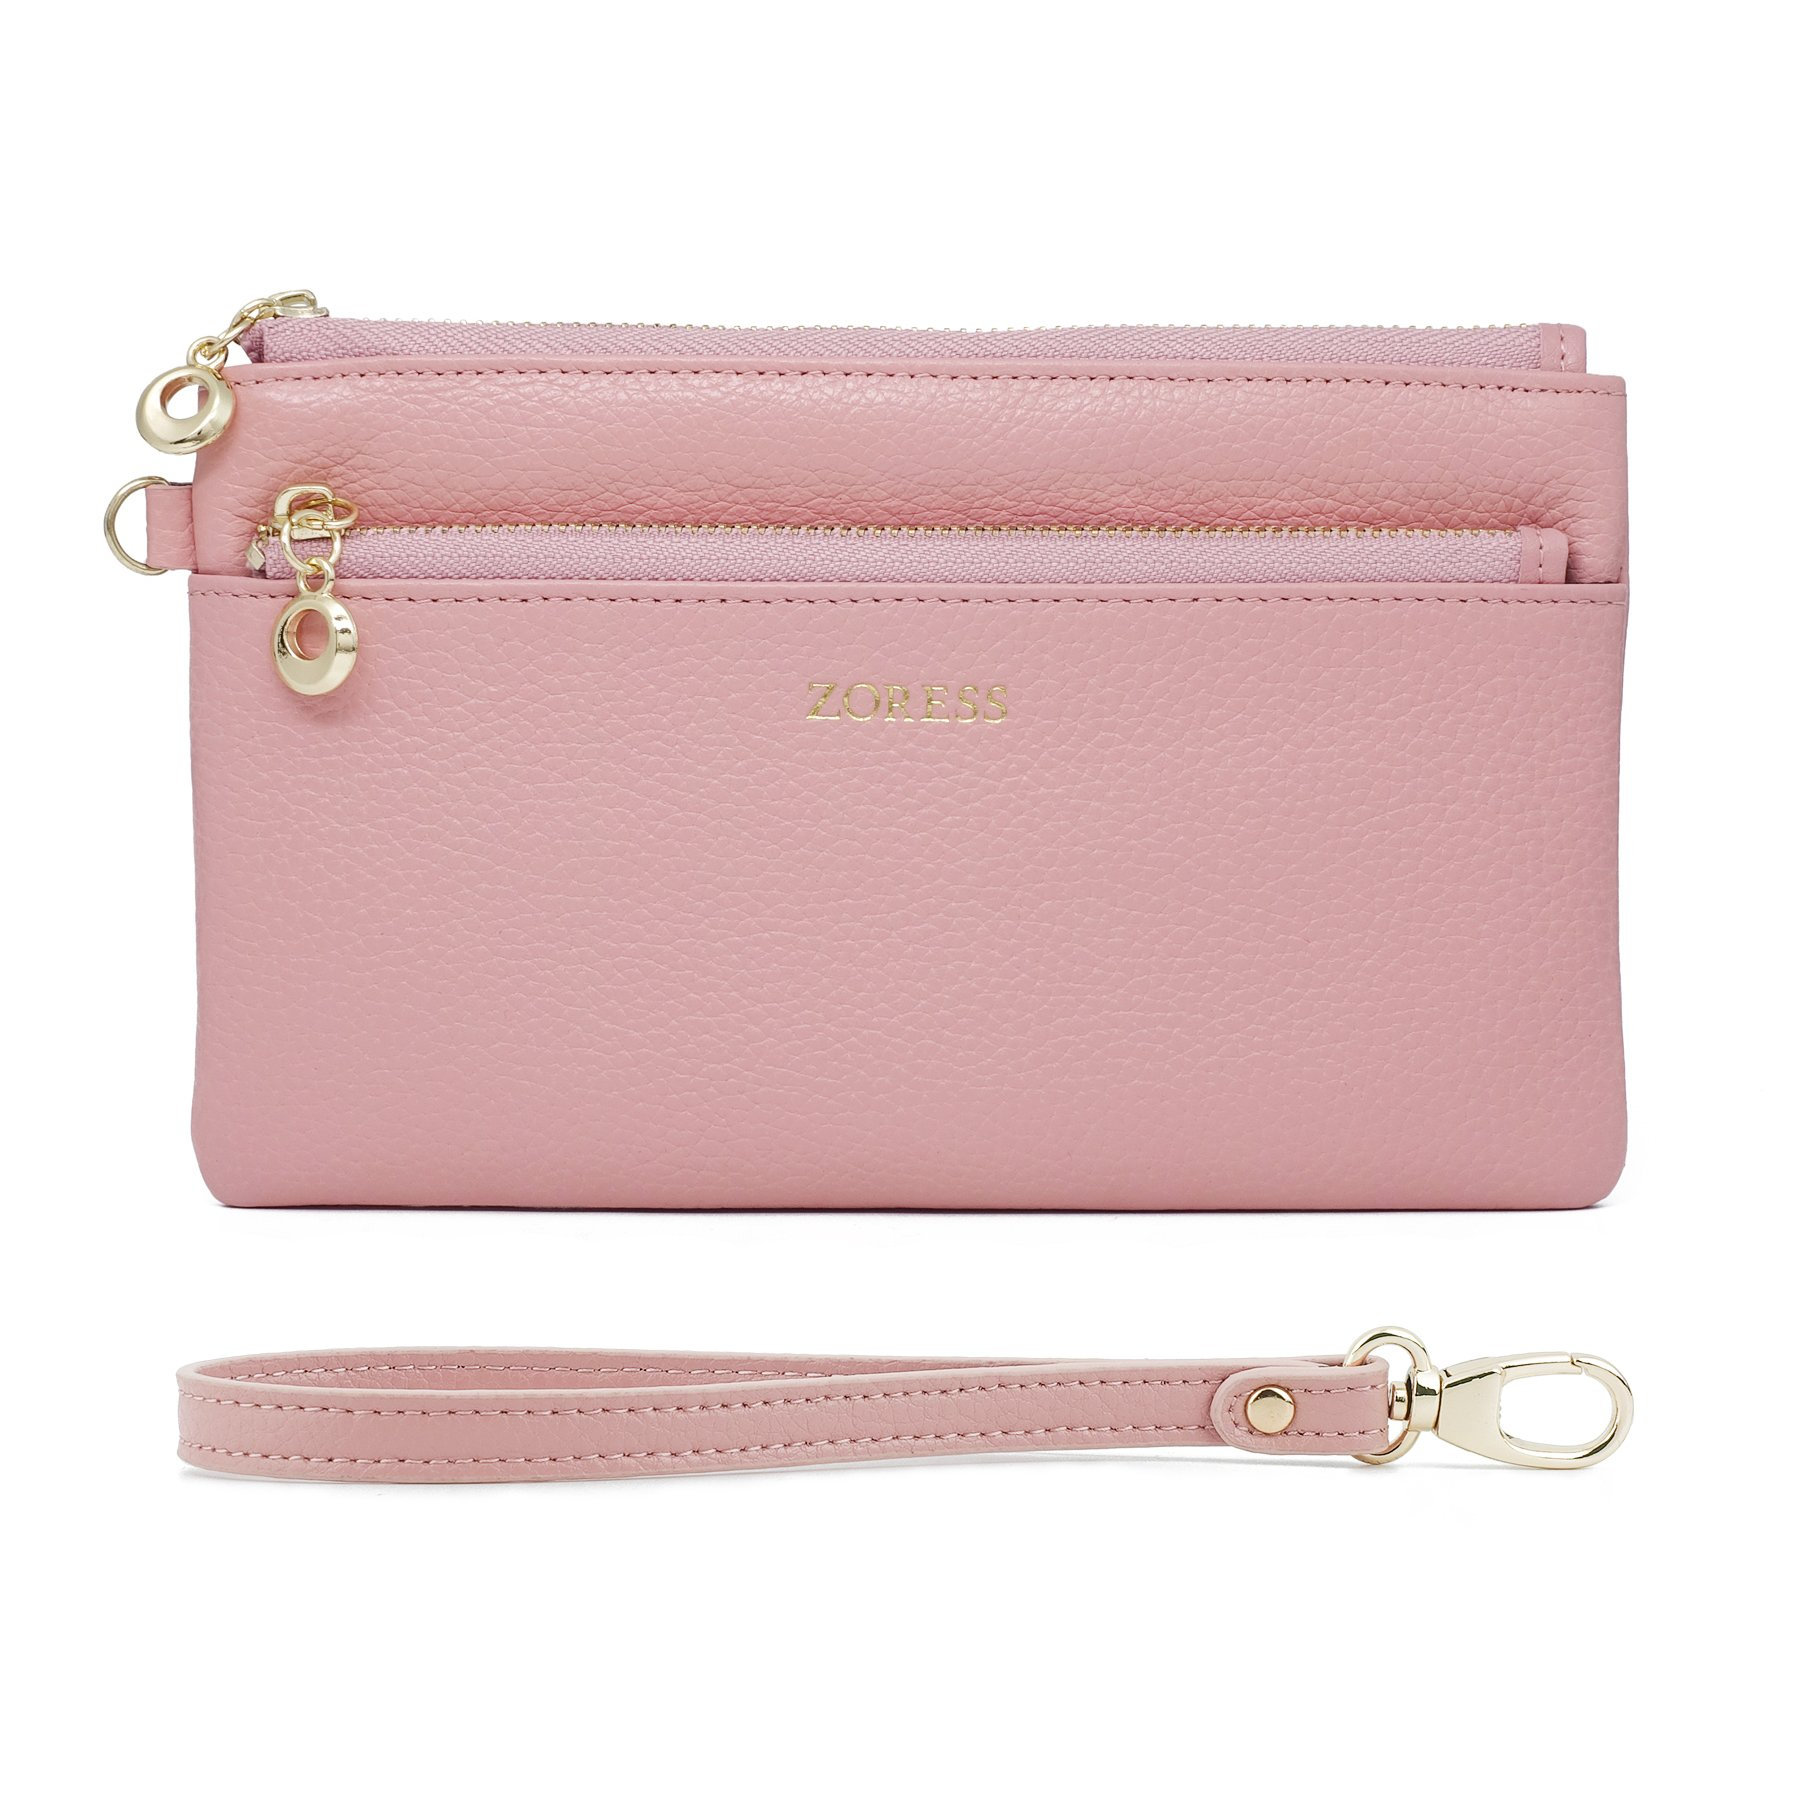 ZORESS Women Genuine Leather Wristlets Bag, Clutch Organizer Wallets Purses for iPhone(Pink Long)